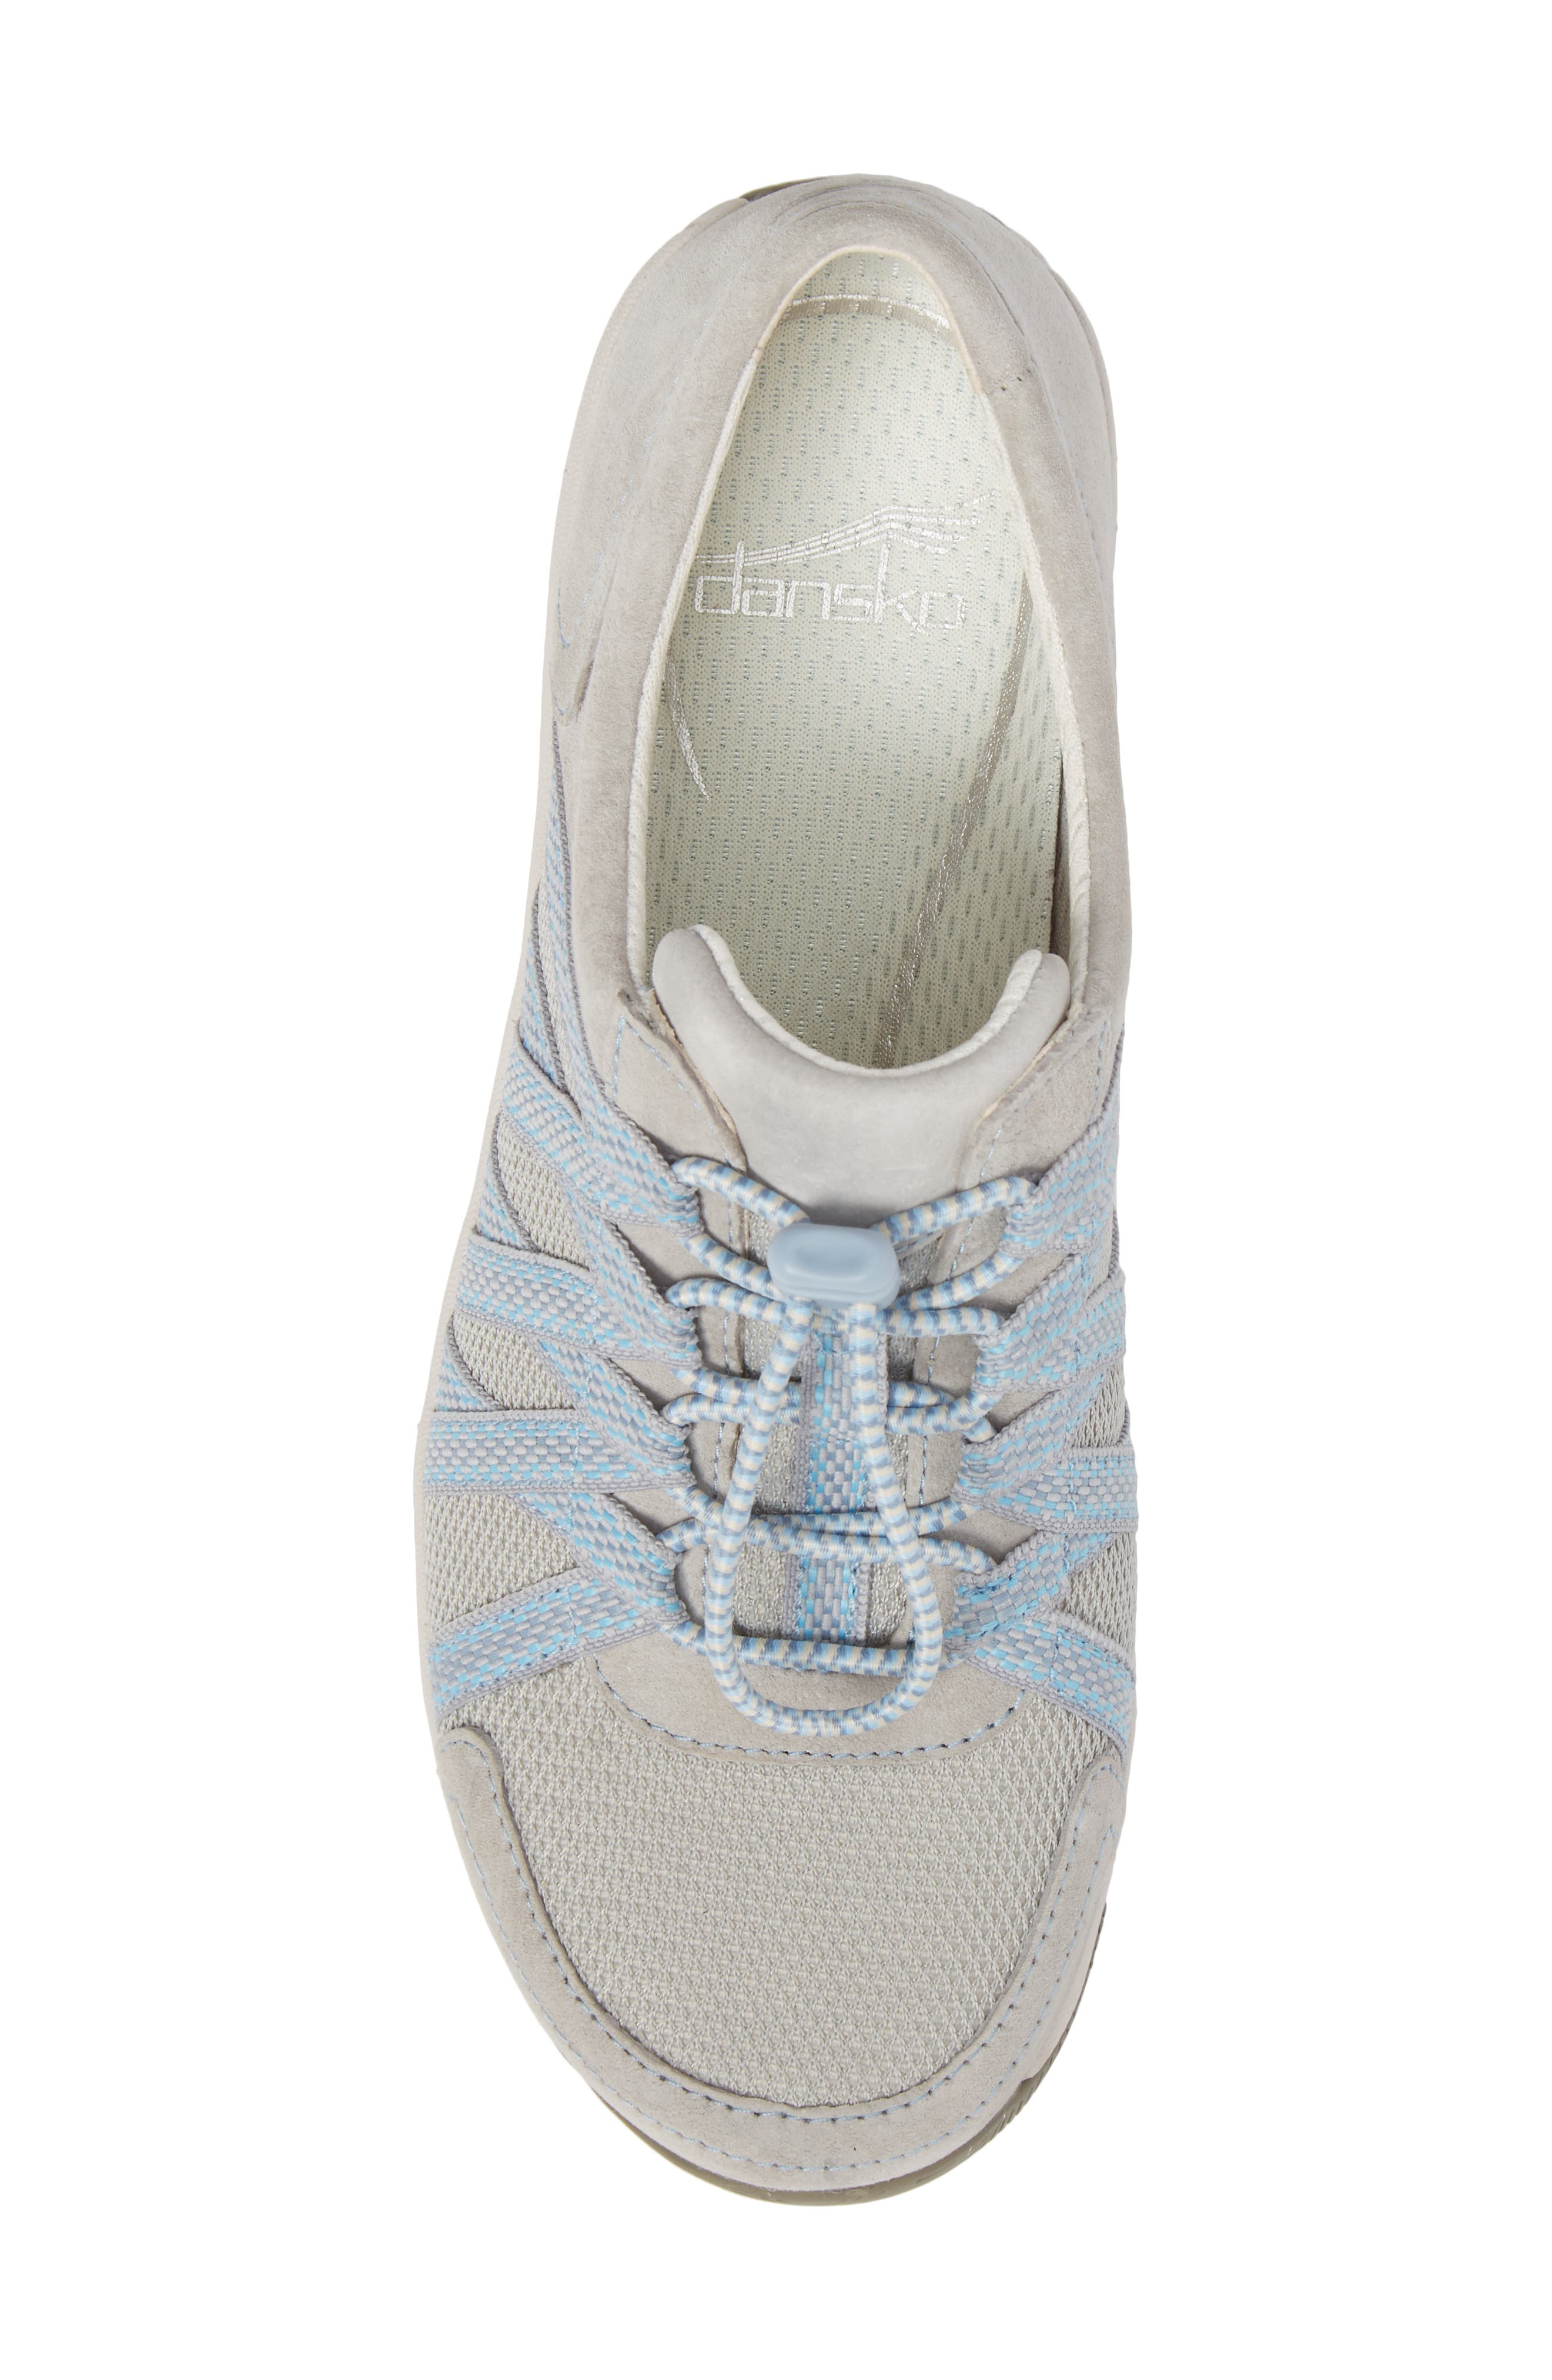 Halifax Collection Honor Sneaker,                             Alternate thumbnail 34, color,